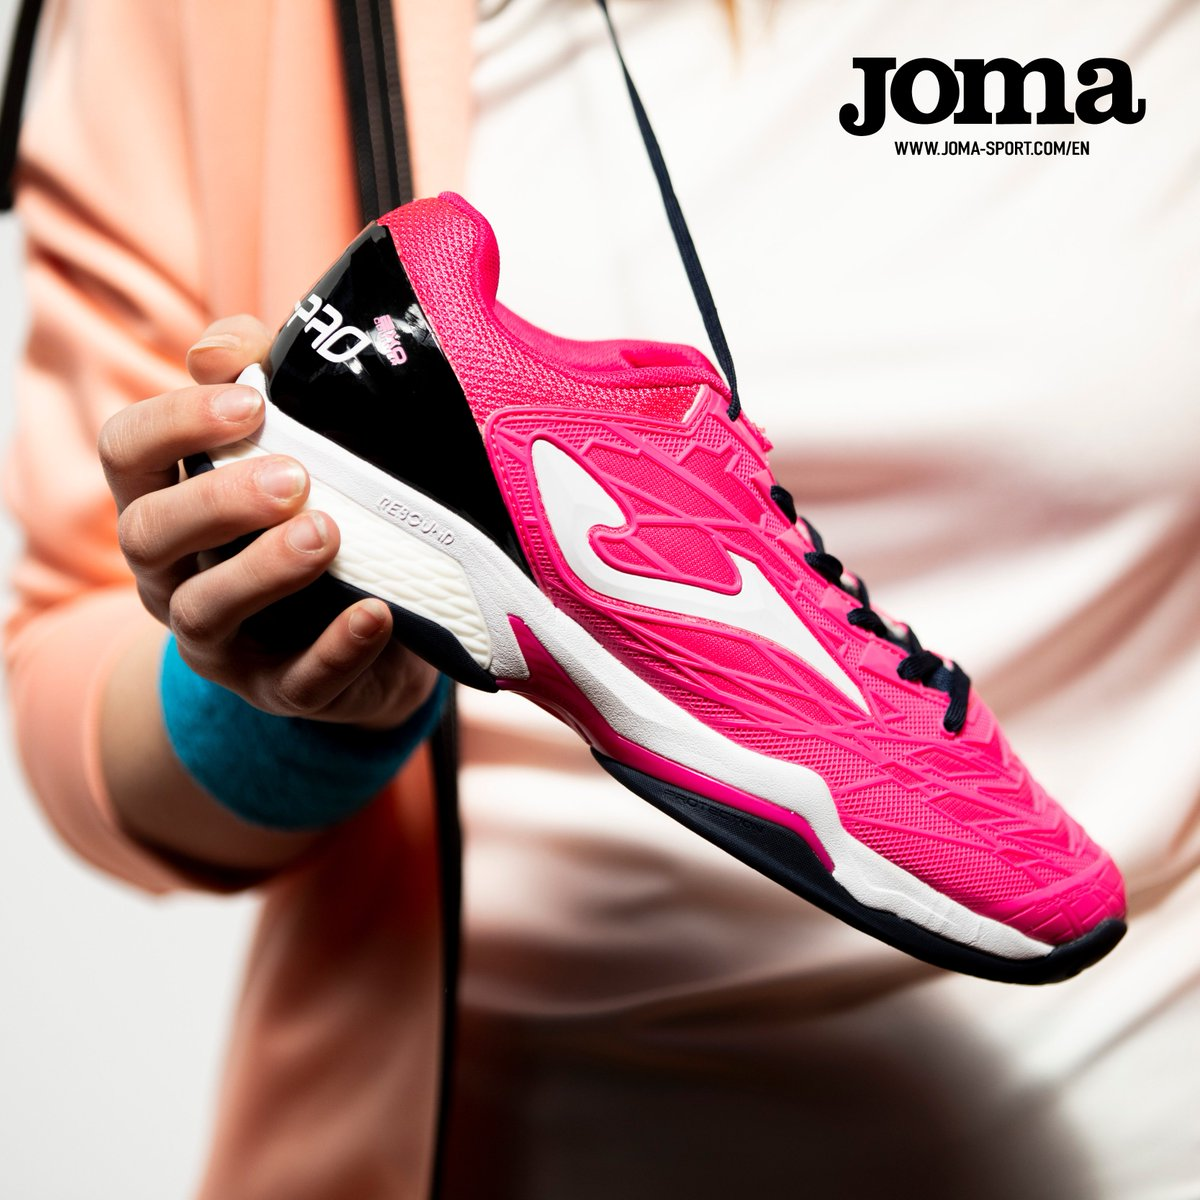 893ff7d890c Joma presents the Ace Pro Tennis/Padal shoes. Available in a variety of  different